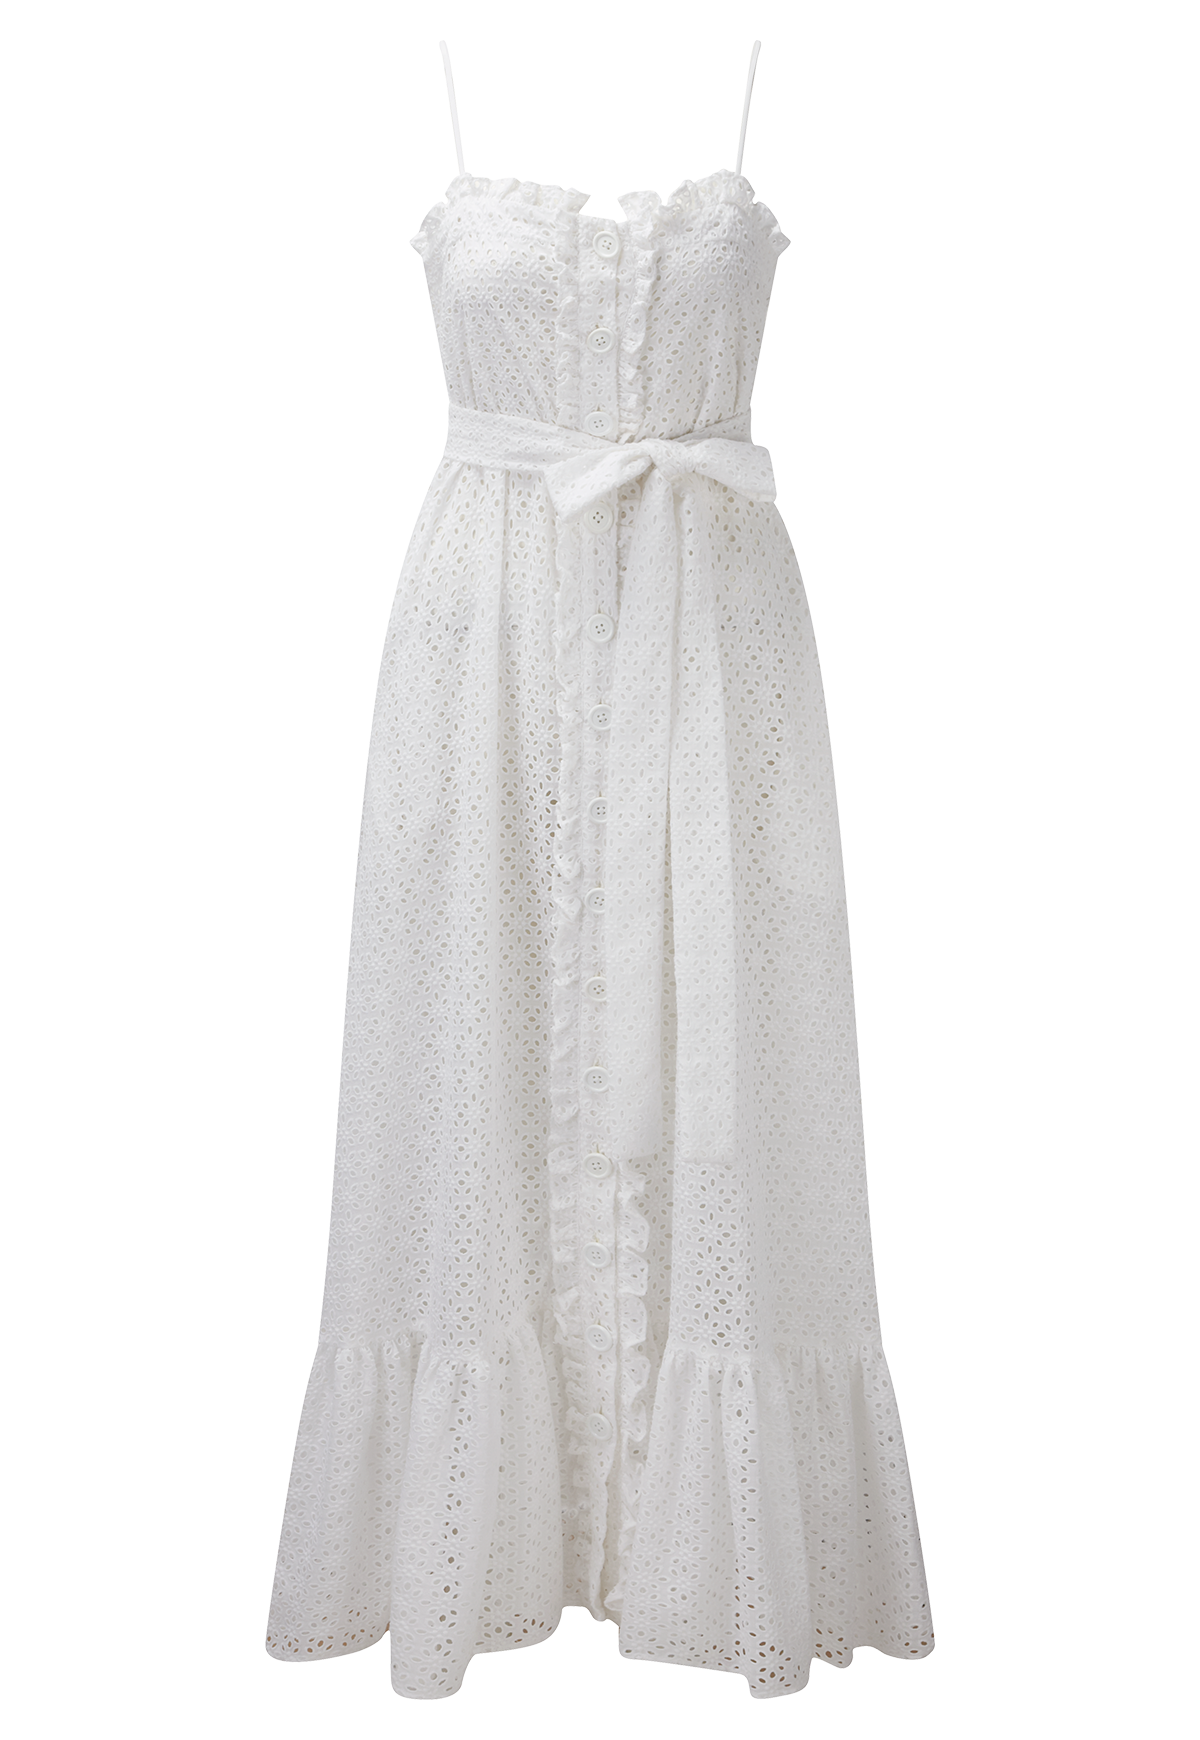 BUTTON DOWN WHITE EYELET SLIP DRESS